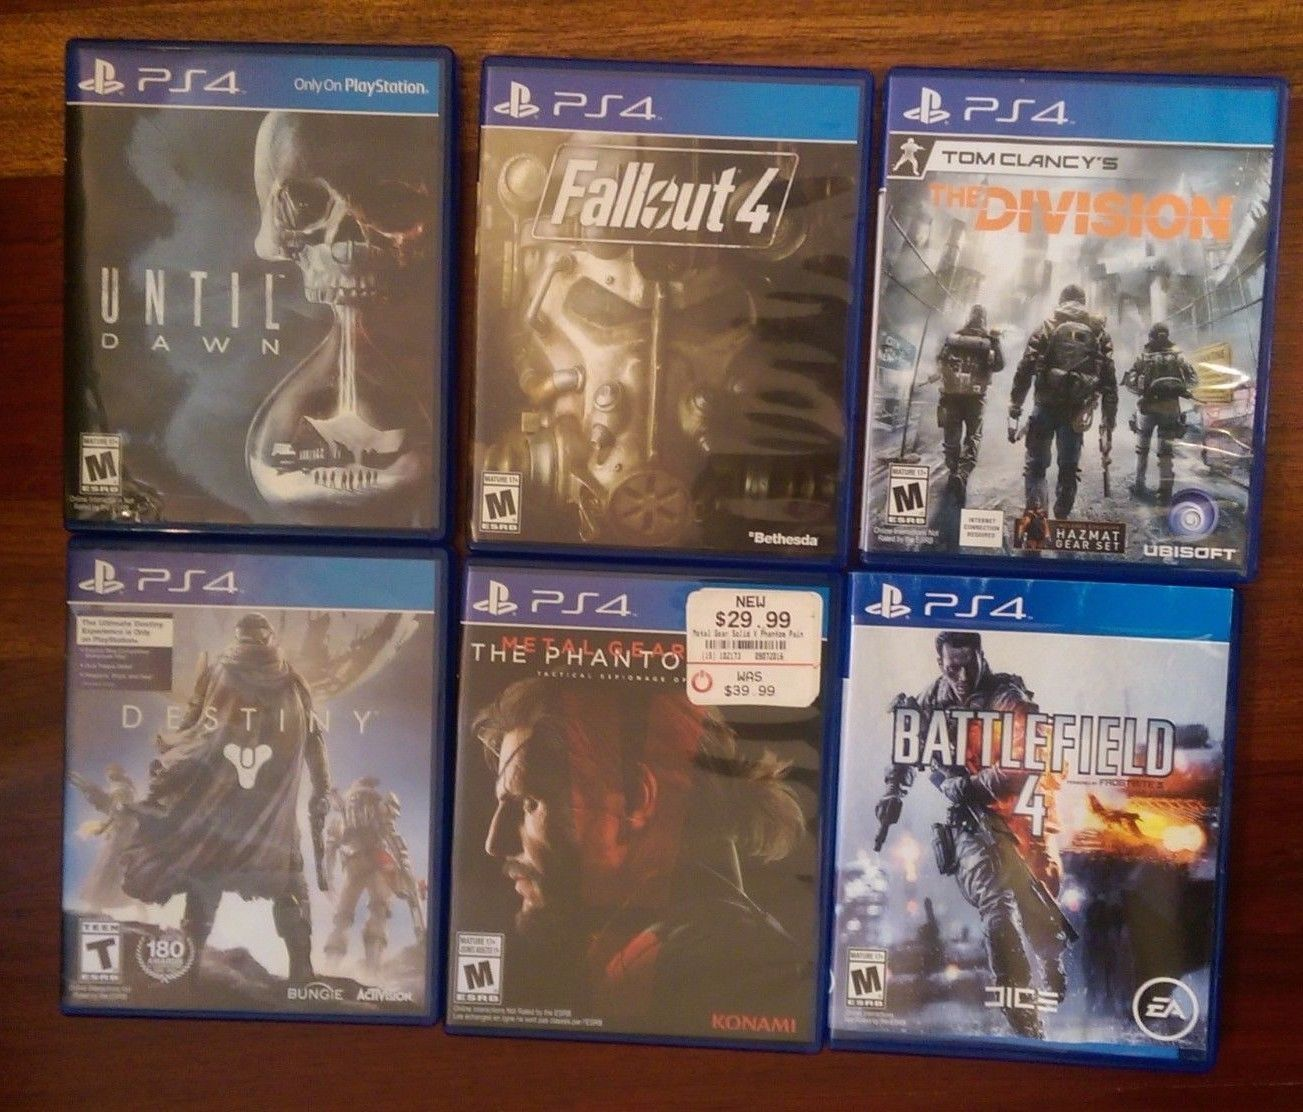 PS4 Lot of 6 Games - Fallout 4 MGS:V BF4 The Division Destiny & Until Dawn https://t.co/8eZsmxhUDt https://t.co/mBFhYJbucd